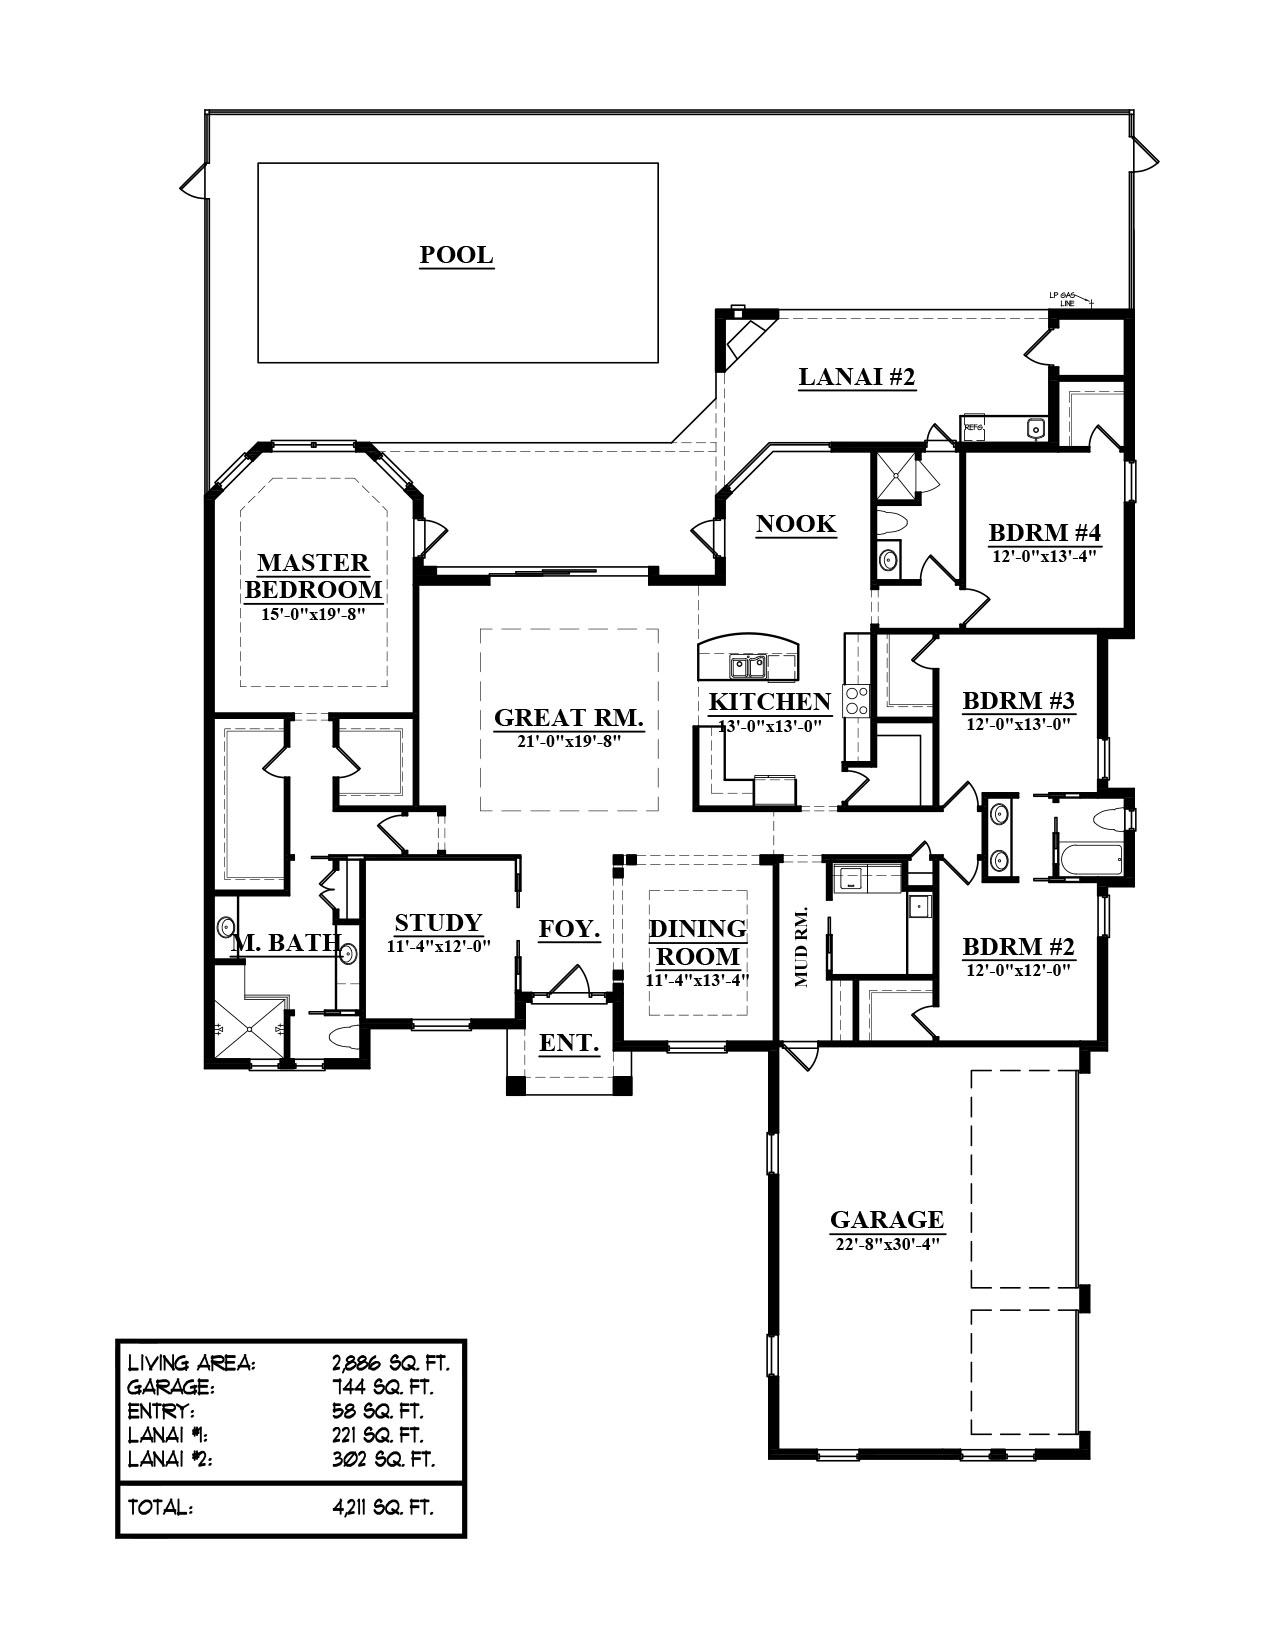 Ernie White Floor Plans_0009_HIGHPOINTe PROOF 2.jpg